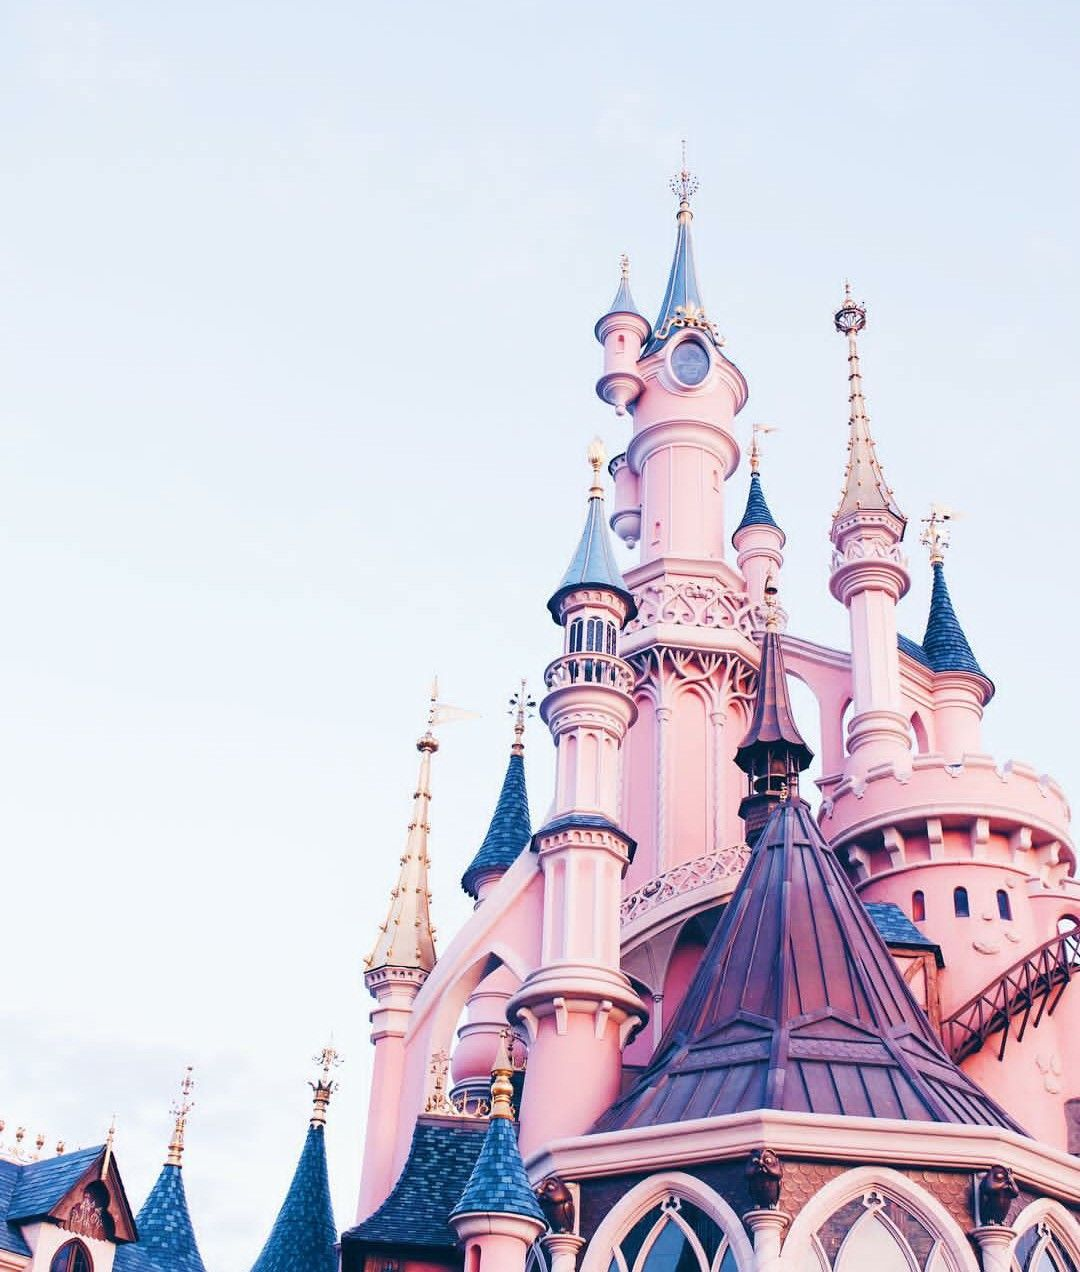 Pin by Katherine Schibler on Disney (With images) | Disney ...